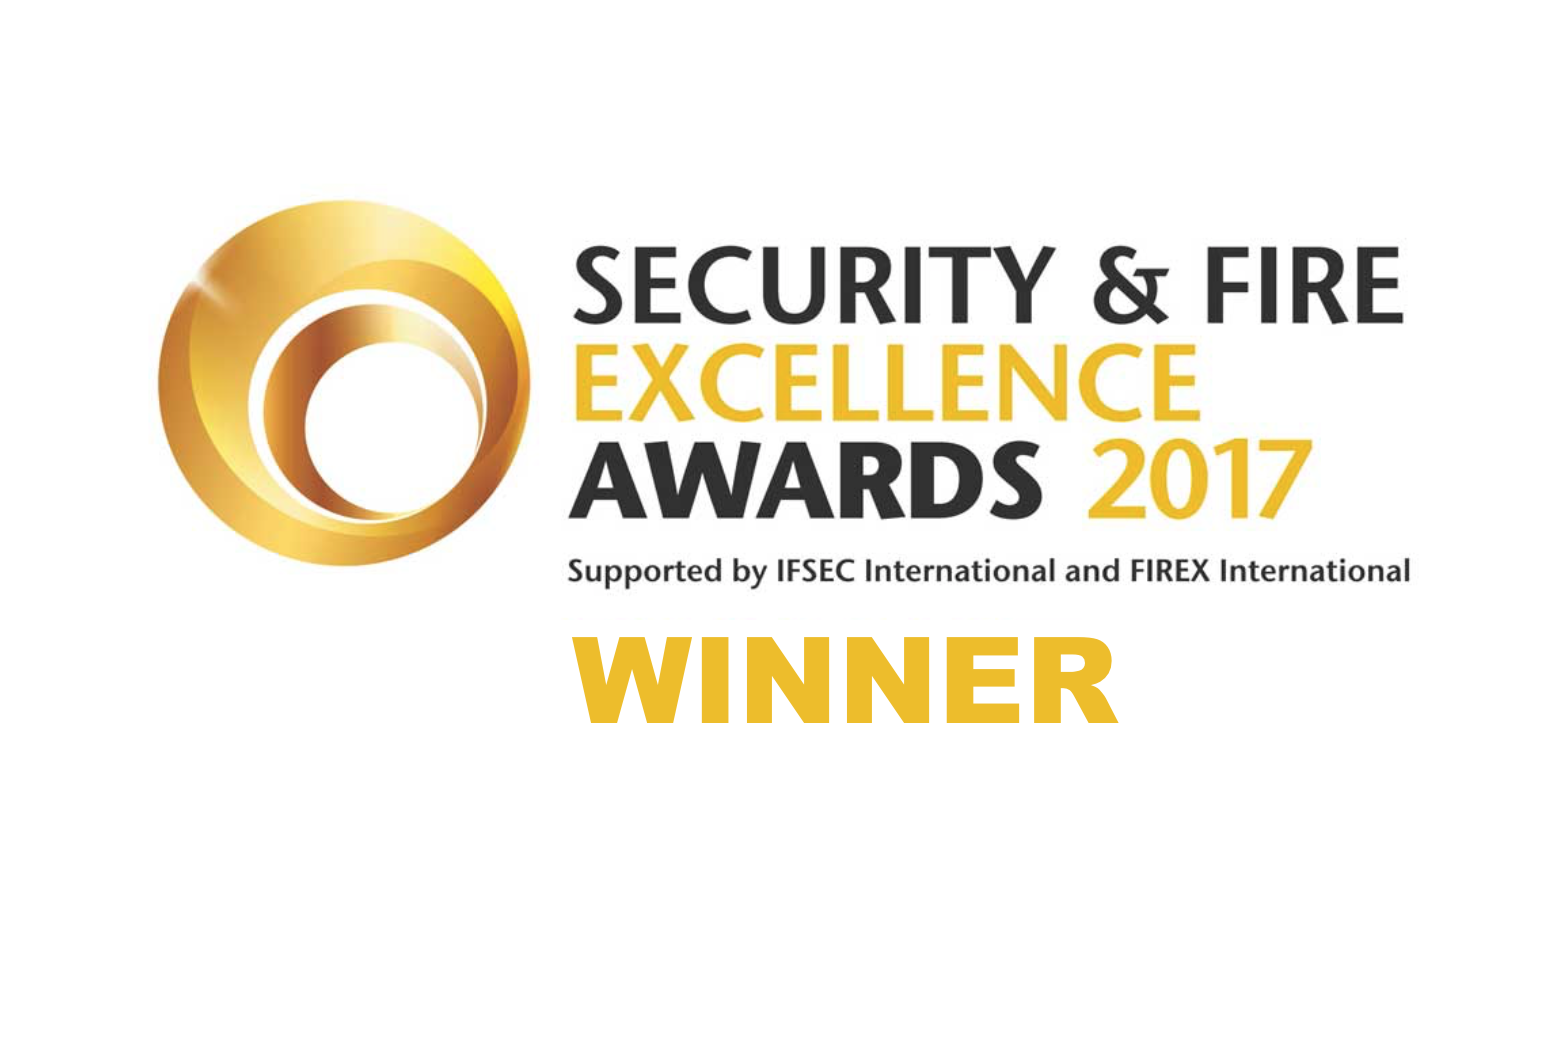 ICTS Winners of the 'SECURITY GUARDING COMPANY OF THE YEAR OVER 50M TURNOVER' Award